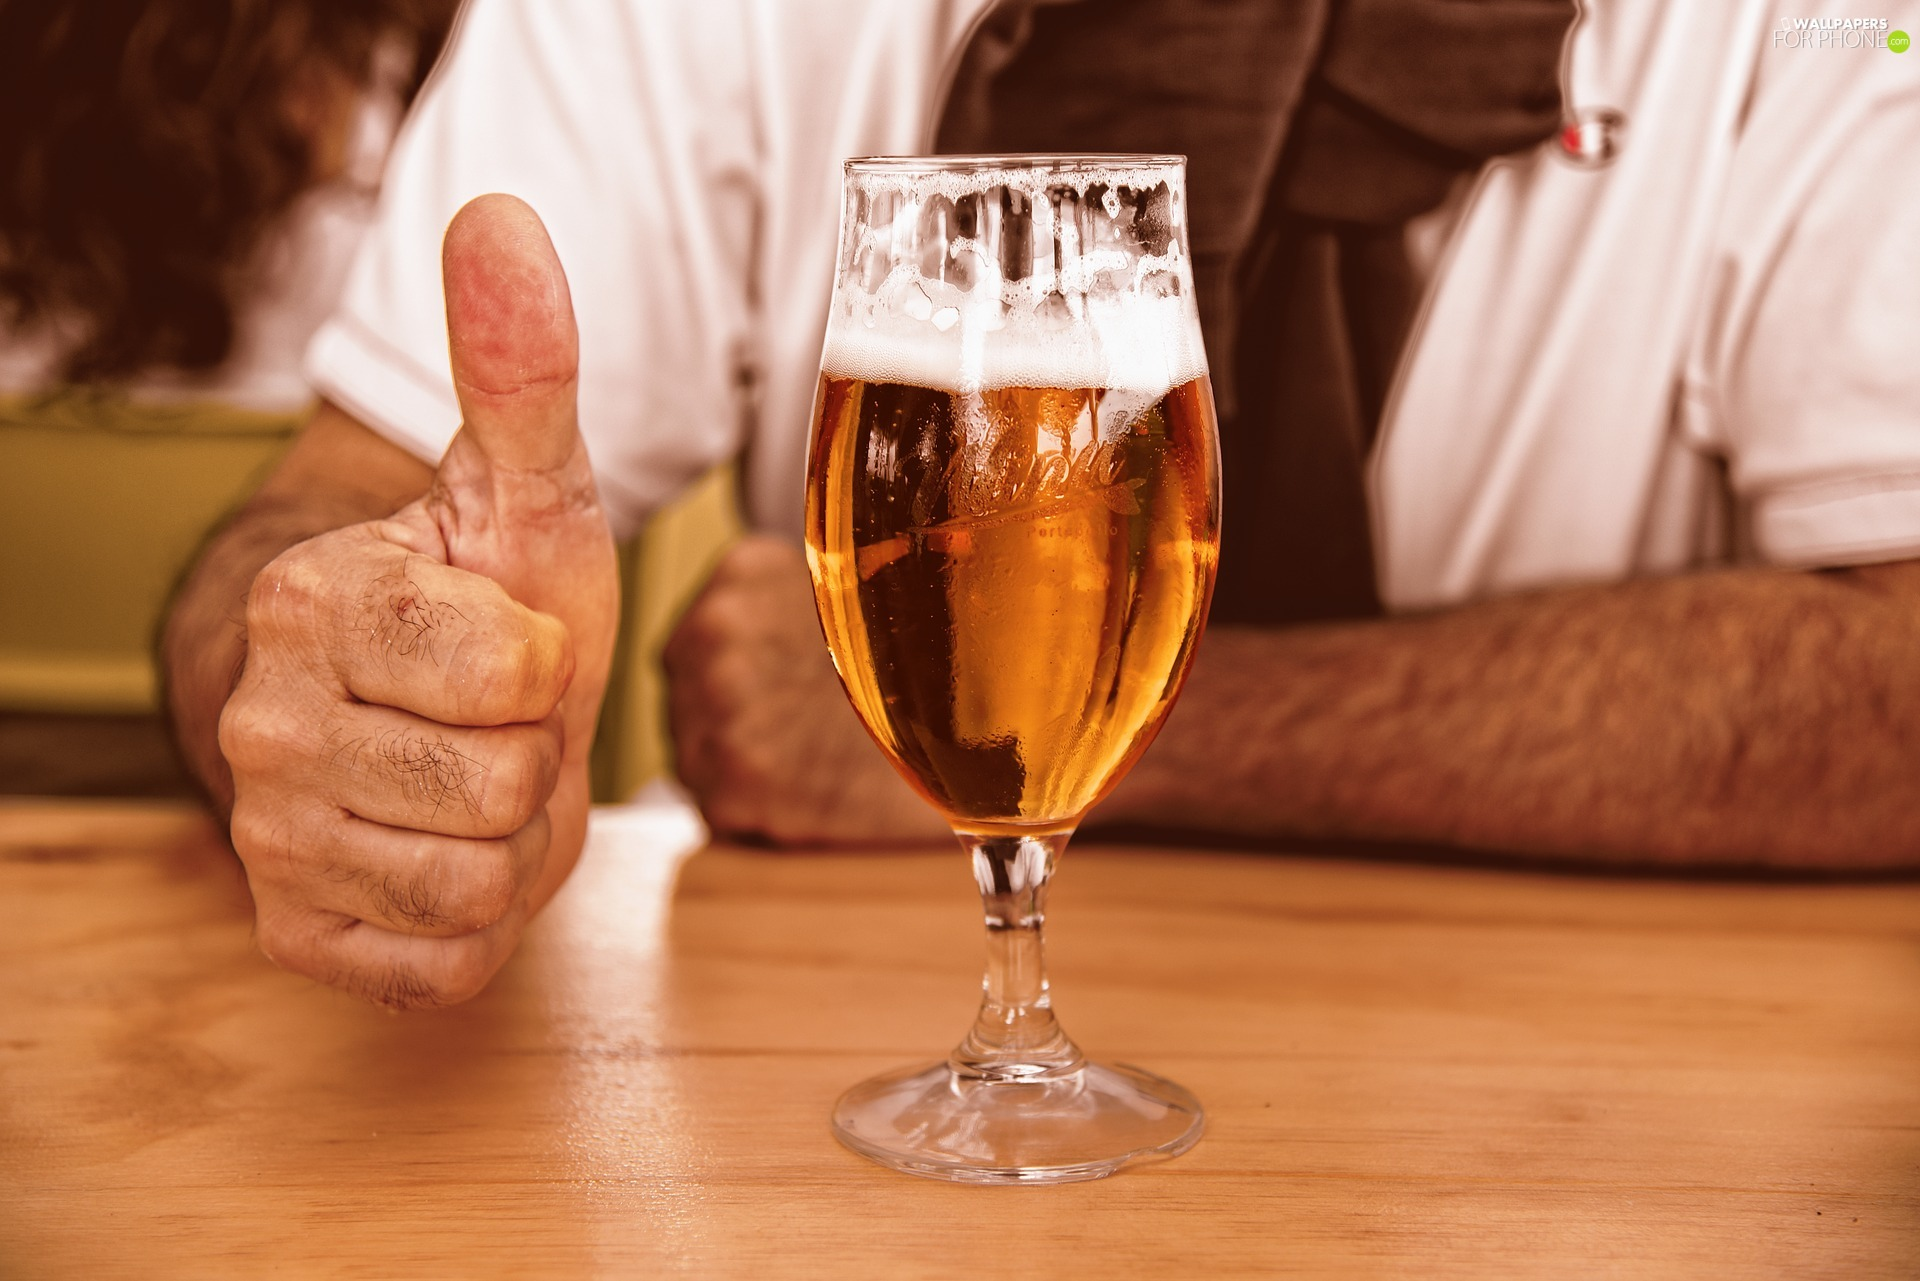 Beer, beer glass, thumb, blade, hands, glass